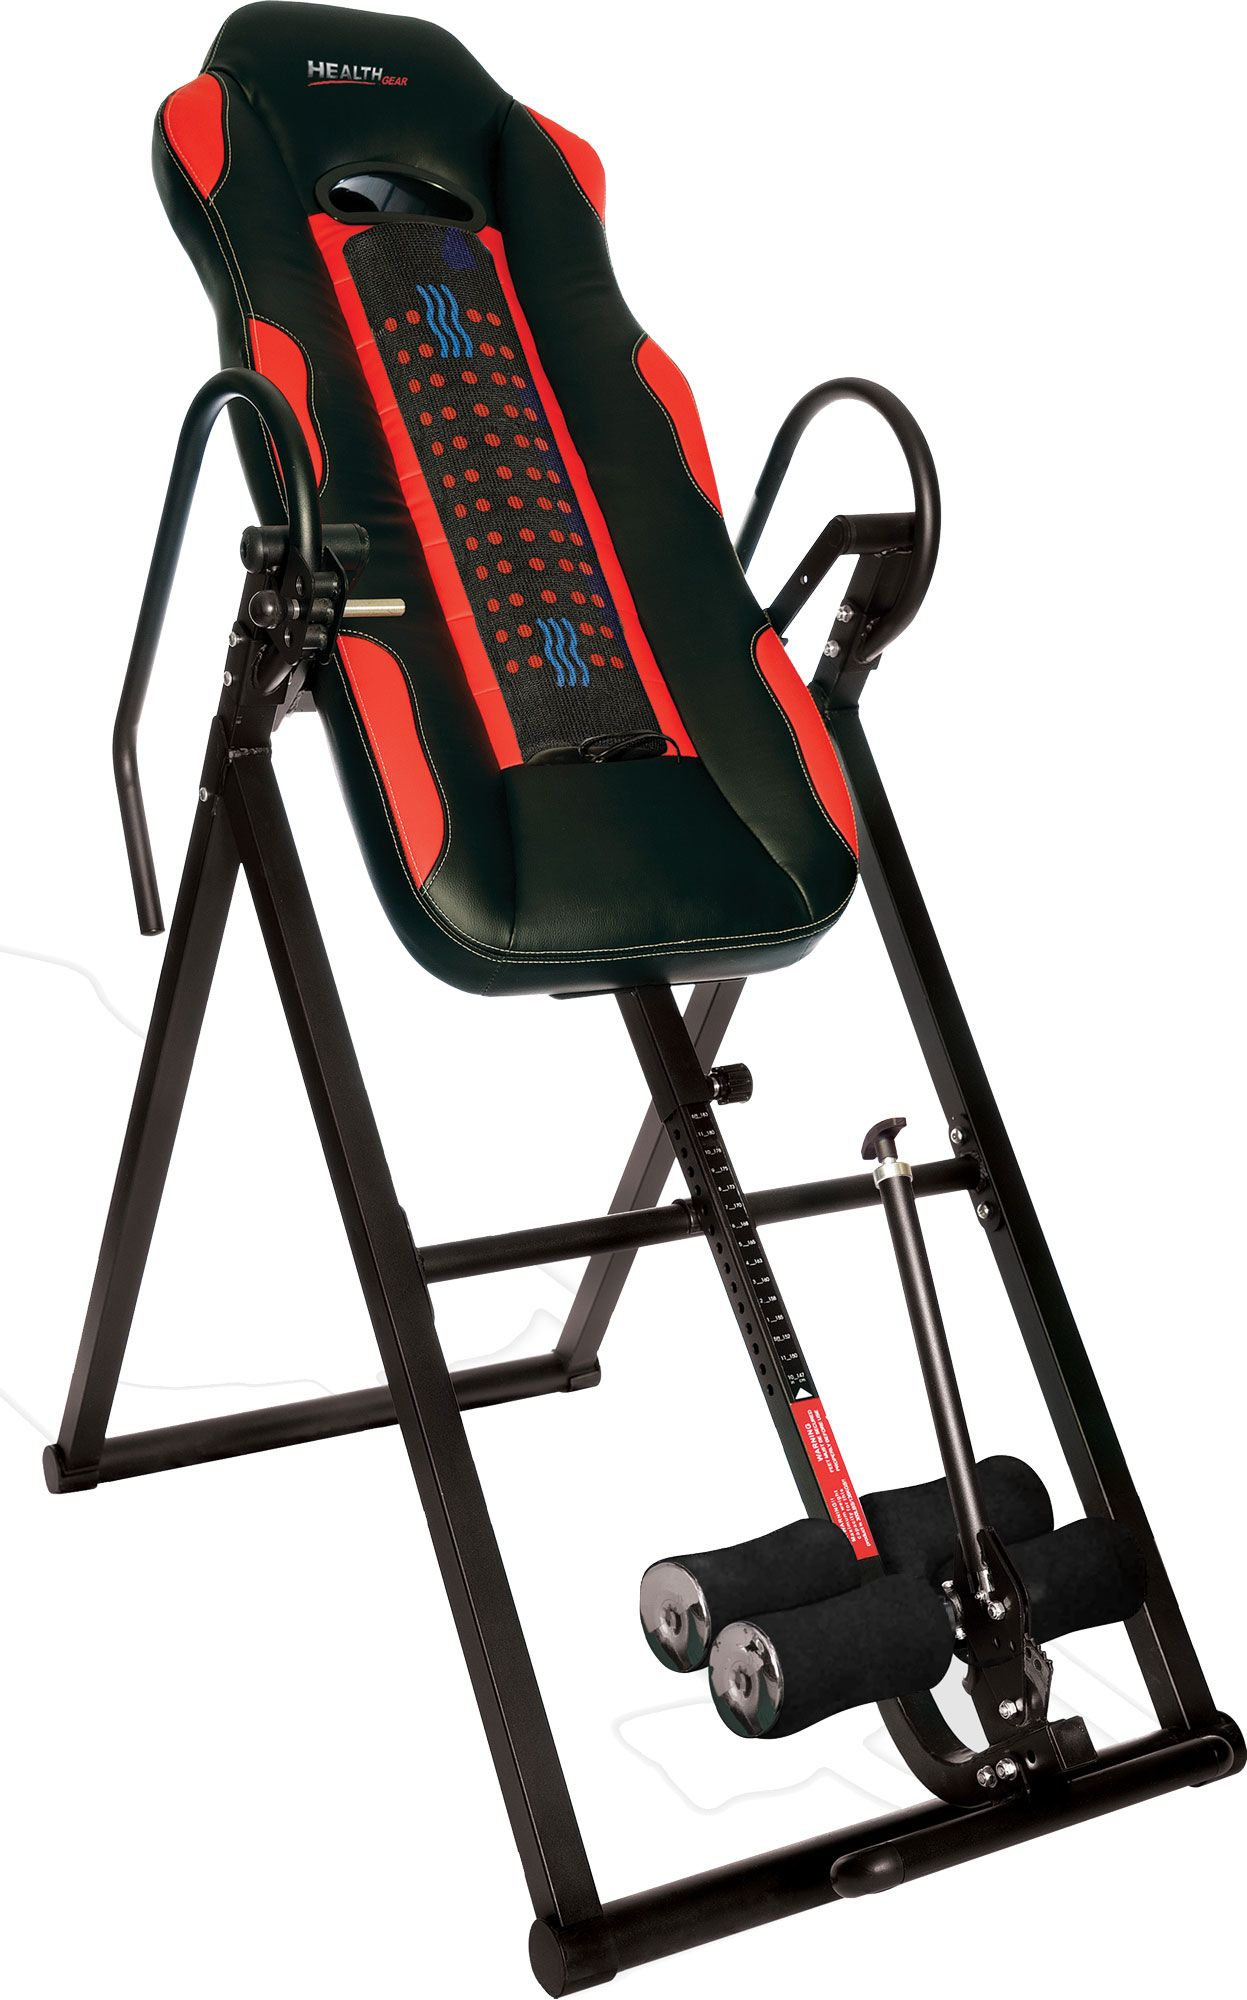 Inversion Tables  Best Price Guarantee at DICKS